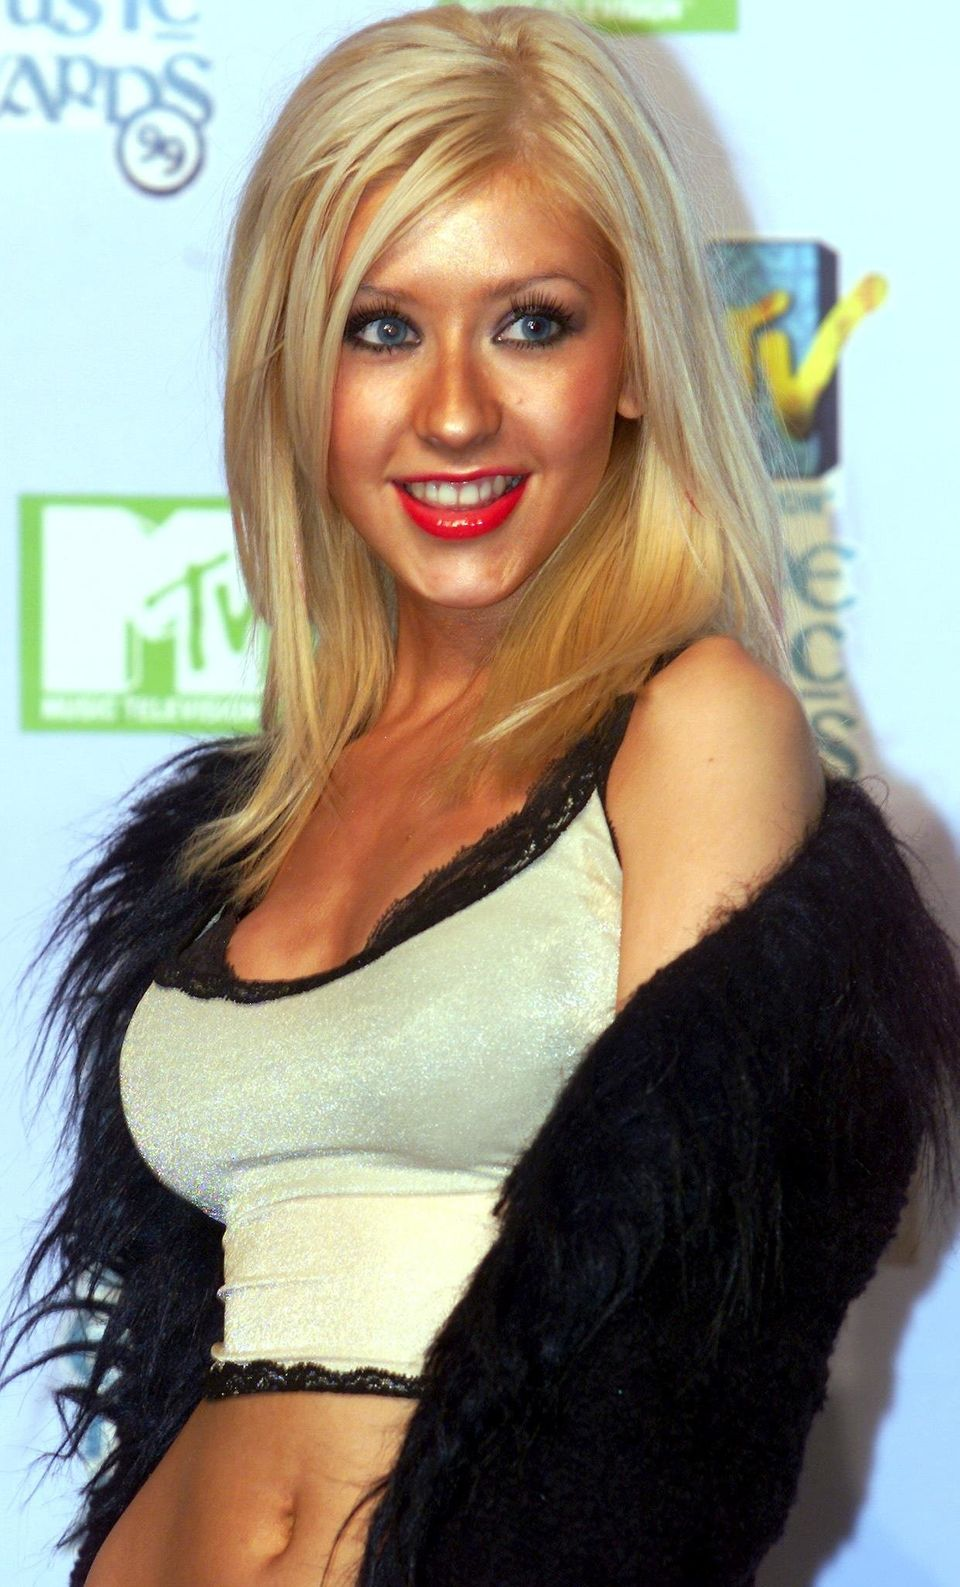 Christina Aguilera poses for photographers, 11 November 1999, at The Point in Dublin during the 1999 MTV Europe Awards.    (E